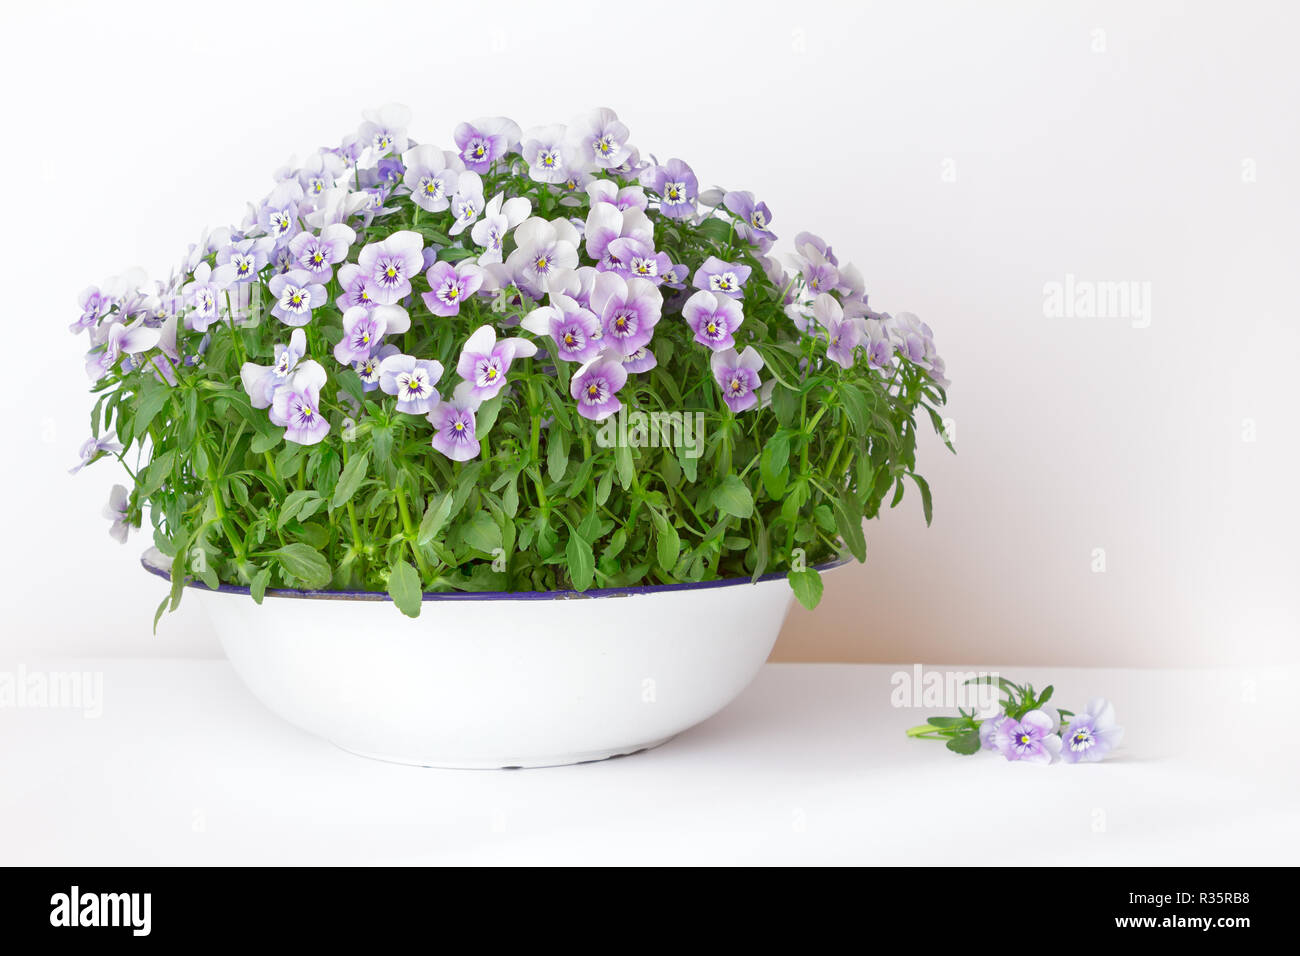 Pansy flowers in shades of lilac, violet and blue in a vintage wash basin or bowl on white background, copy or text space Stock Photo